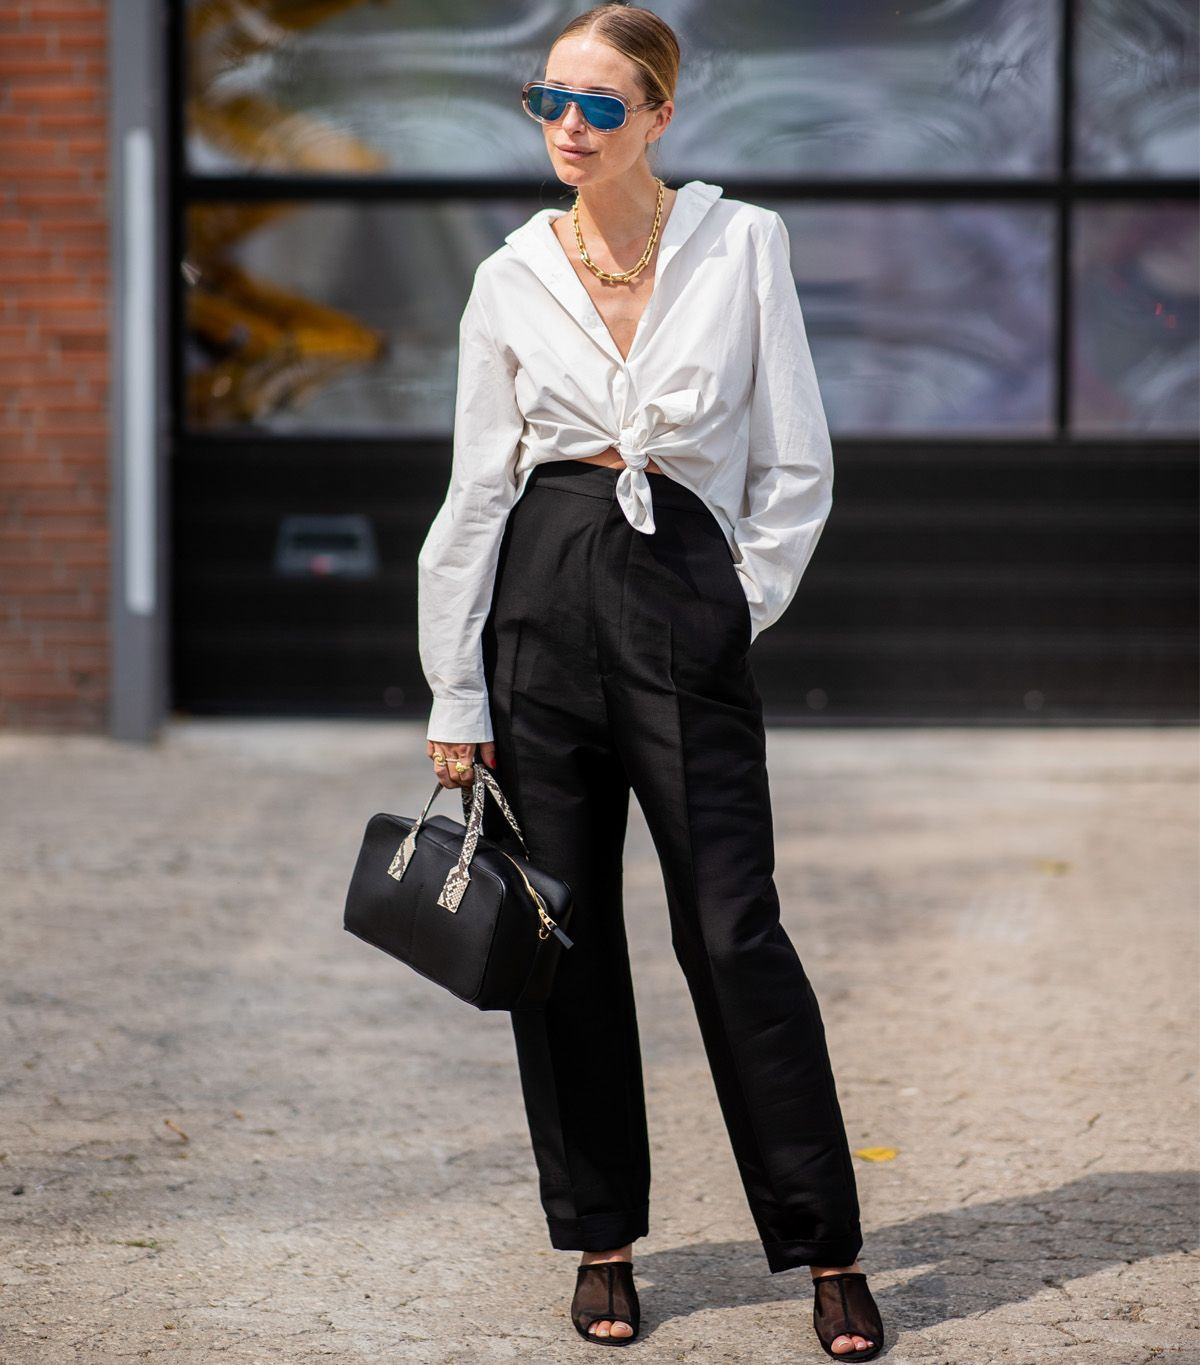 The Céline Sunglasses You'll See In Every Street Style